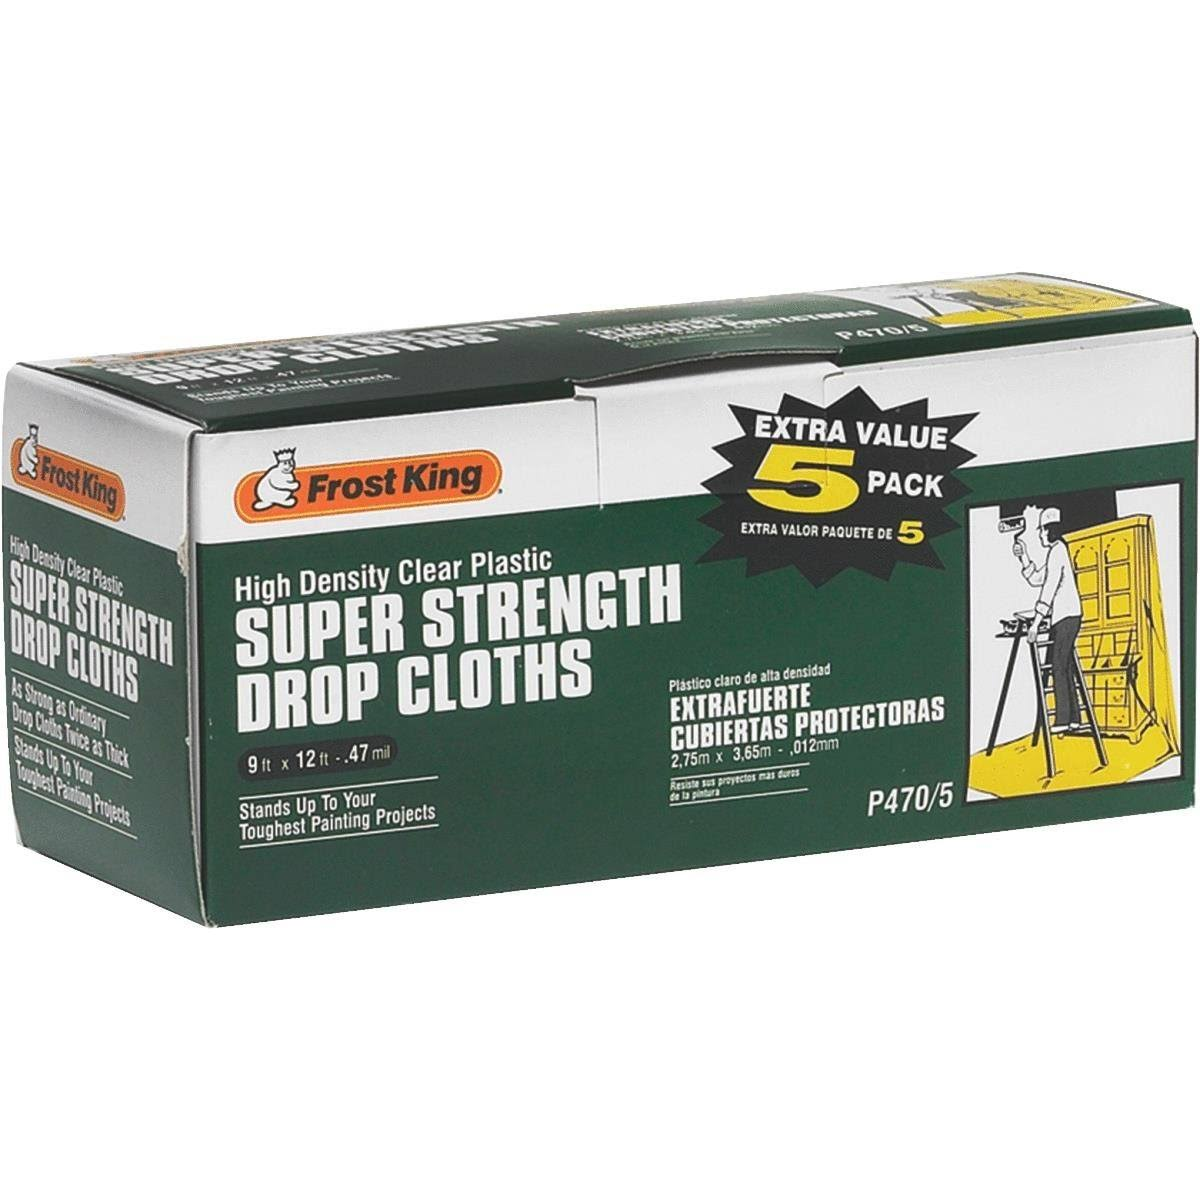 Frost King High-density Drop Cloth - 5pk